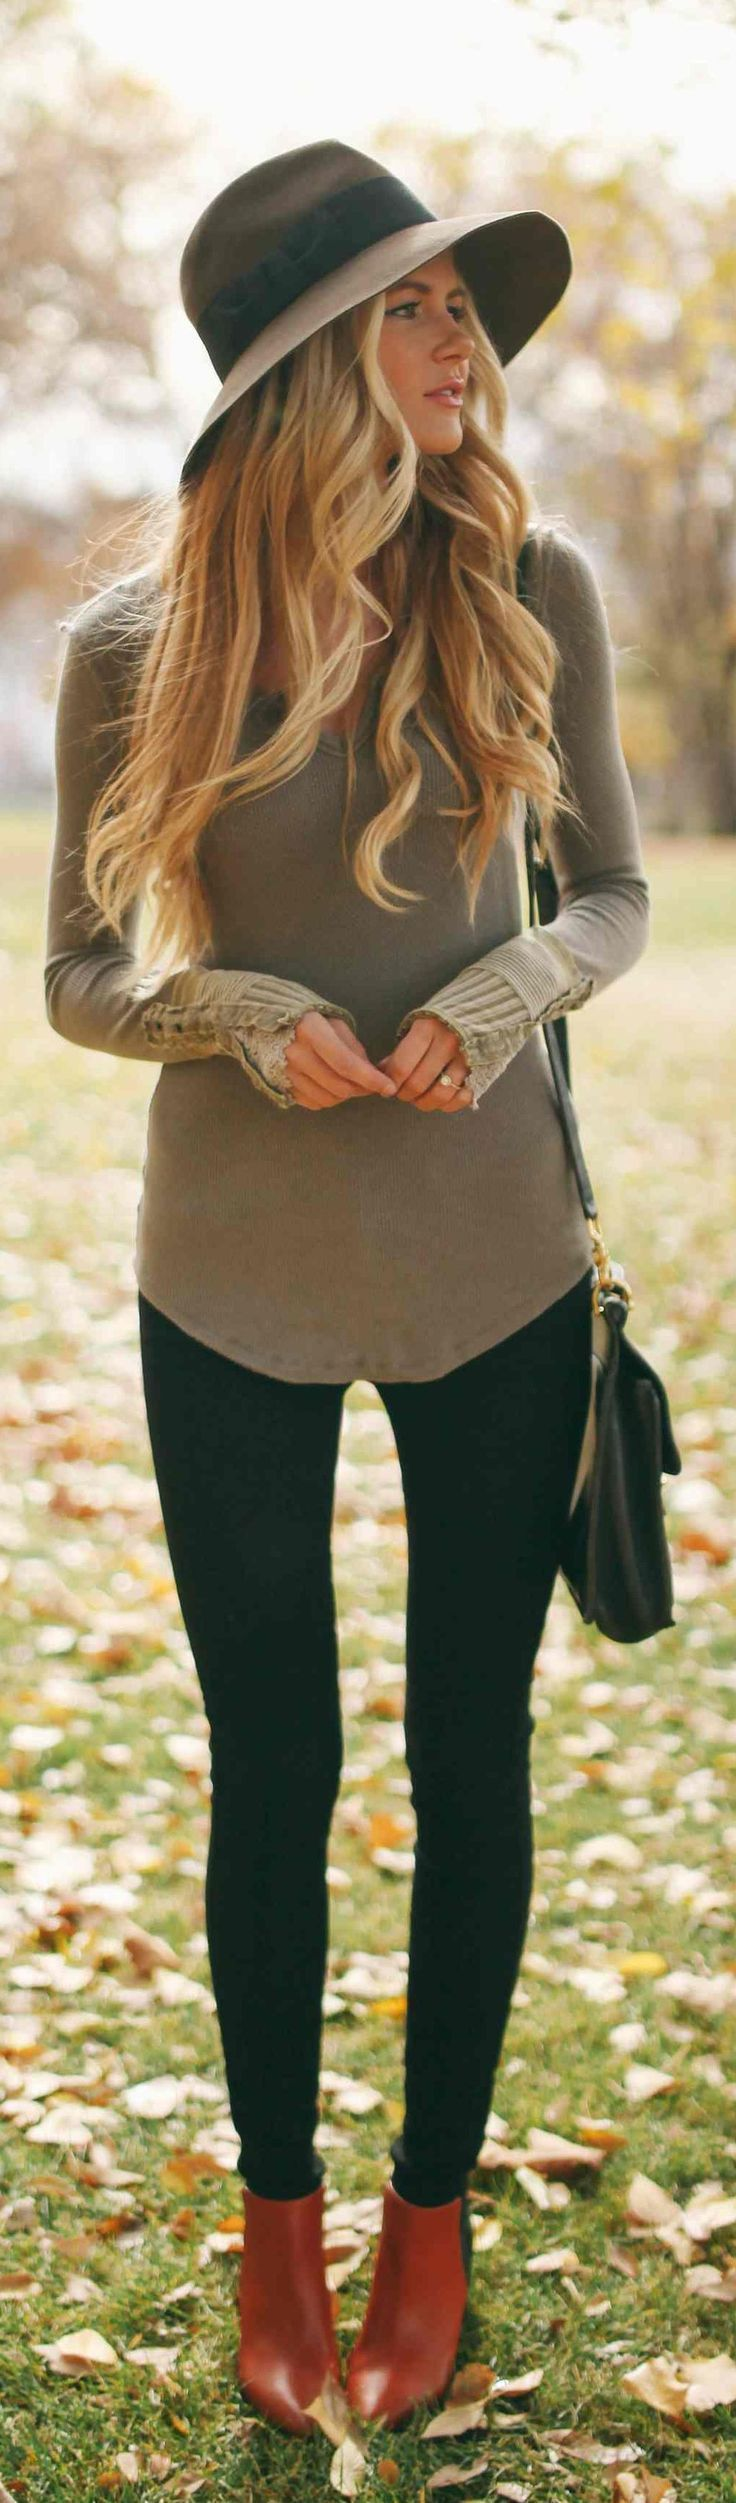 best 25+ cute thanksgiving outfits ideas on pinterest | outfits